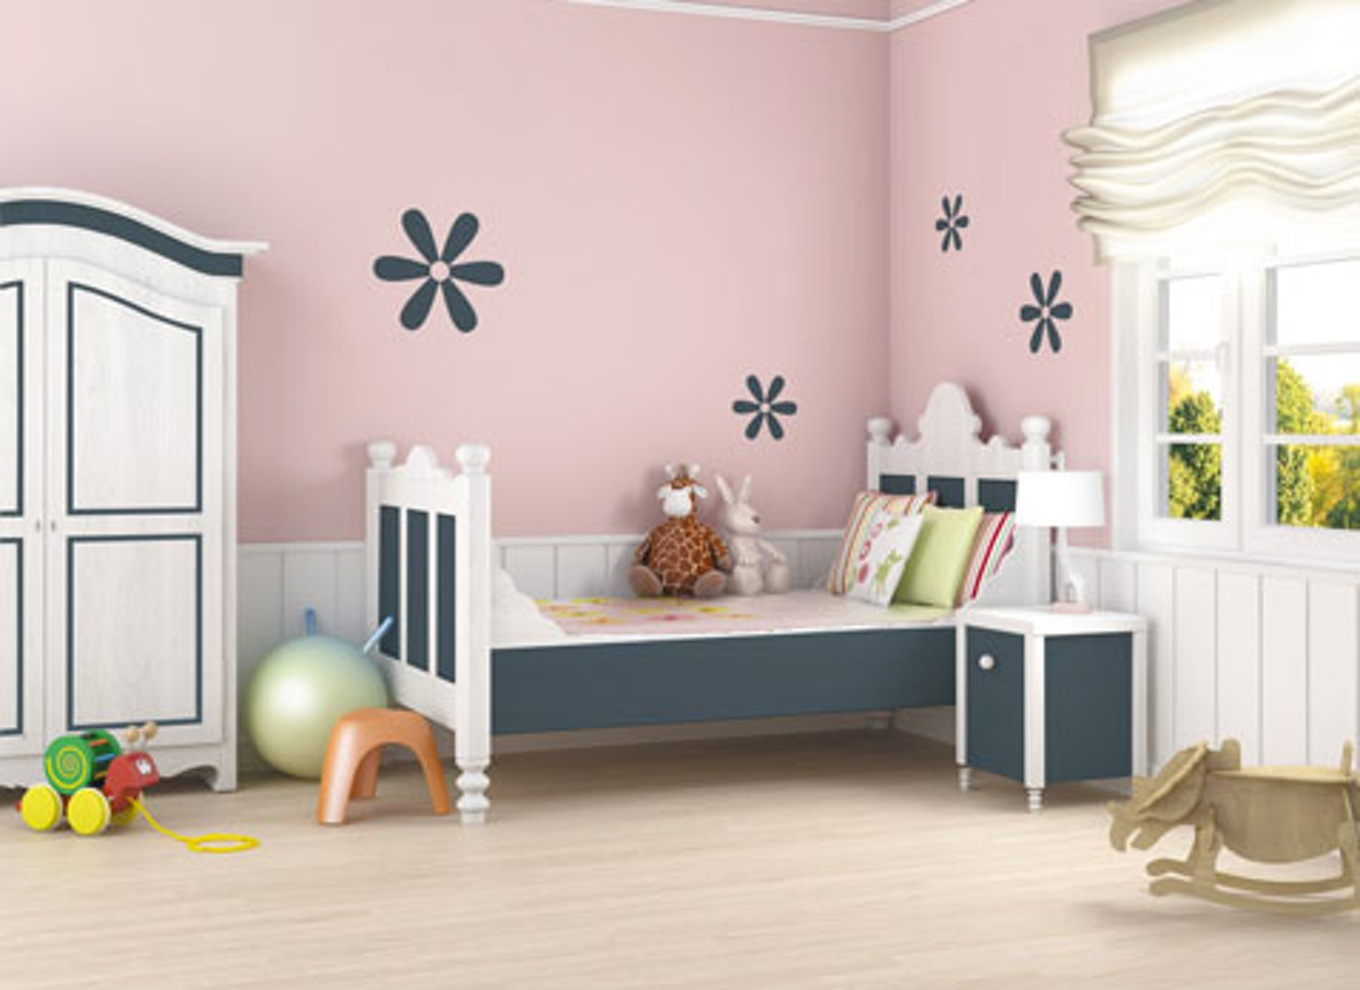 deco peinture mur chambre bebe id es de travaux. Black Bedroom Furniture Sets. Home Design Ideas